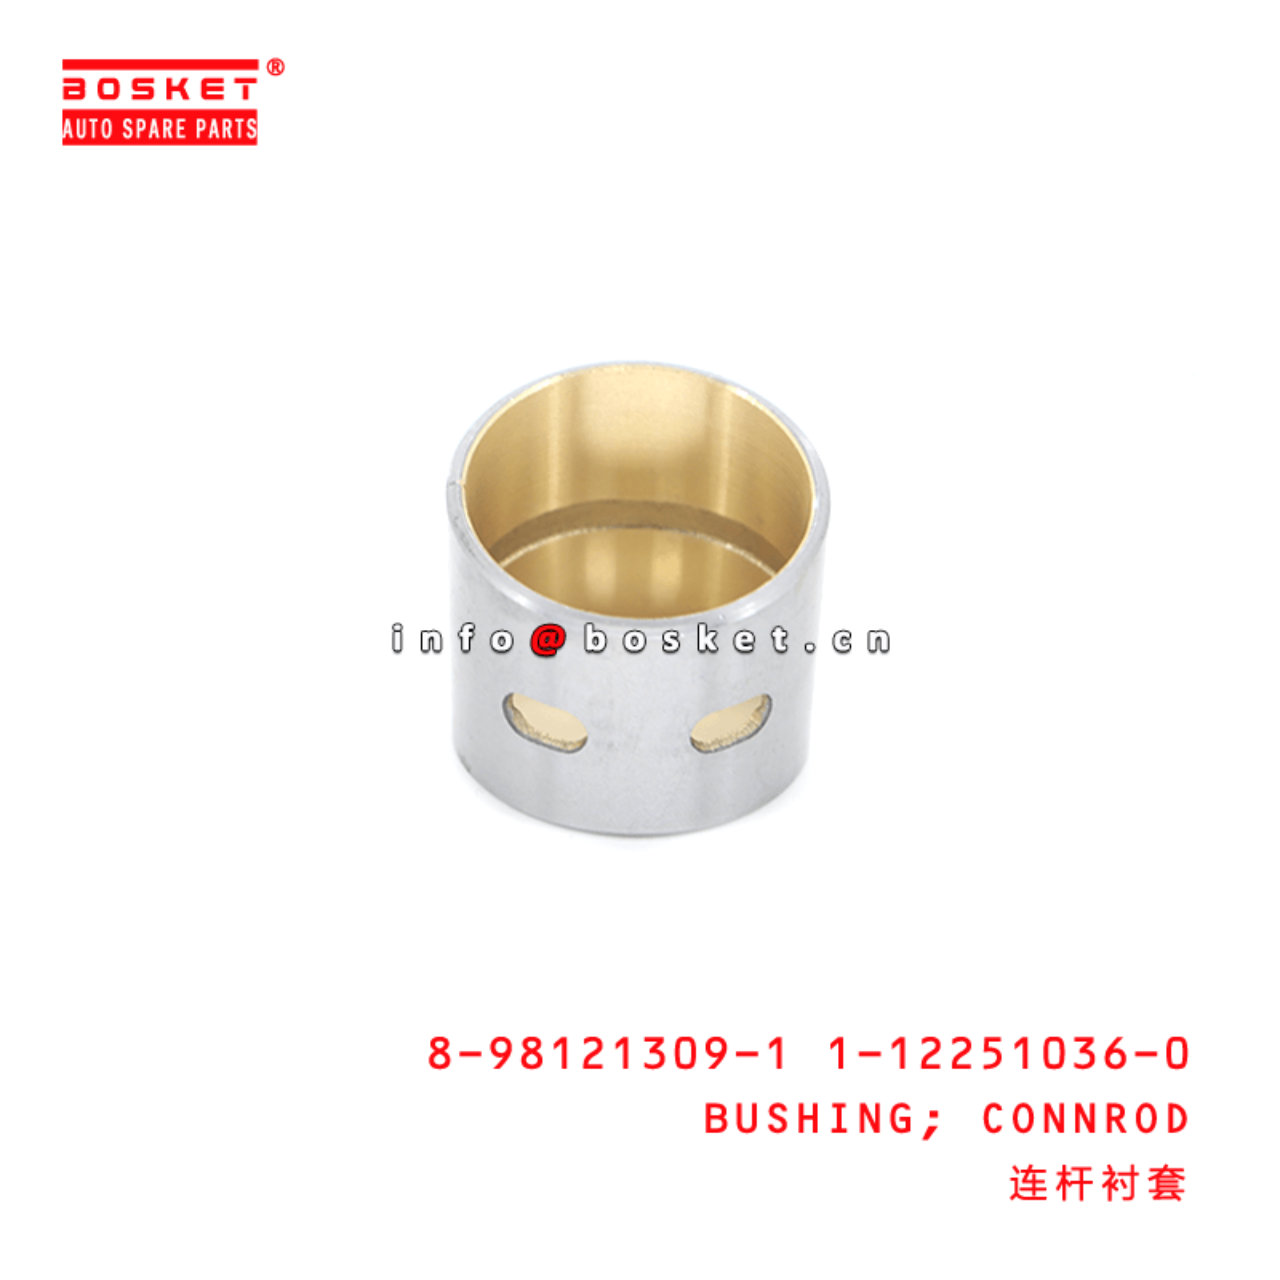 8-98121309-0 1-12251036-0 Connecting Rod Bushing 8981213090 1122510360 Suitable for ISUZU FRR 4HF1 4